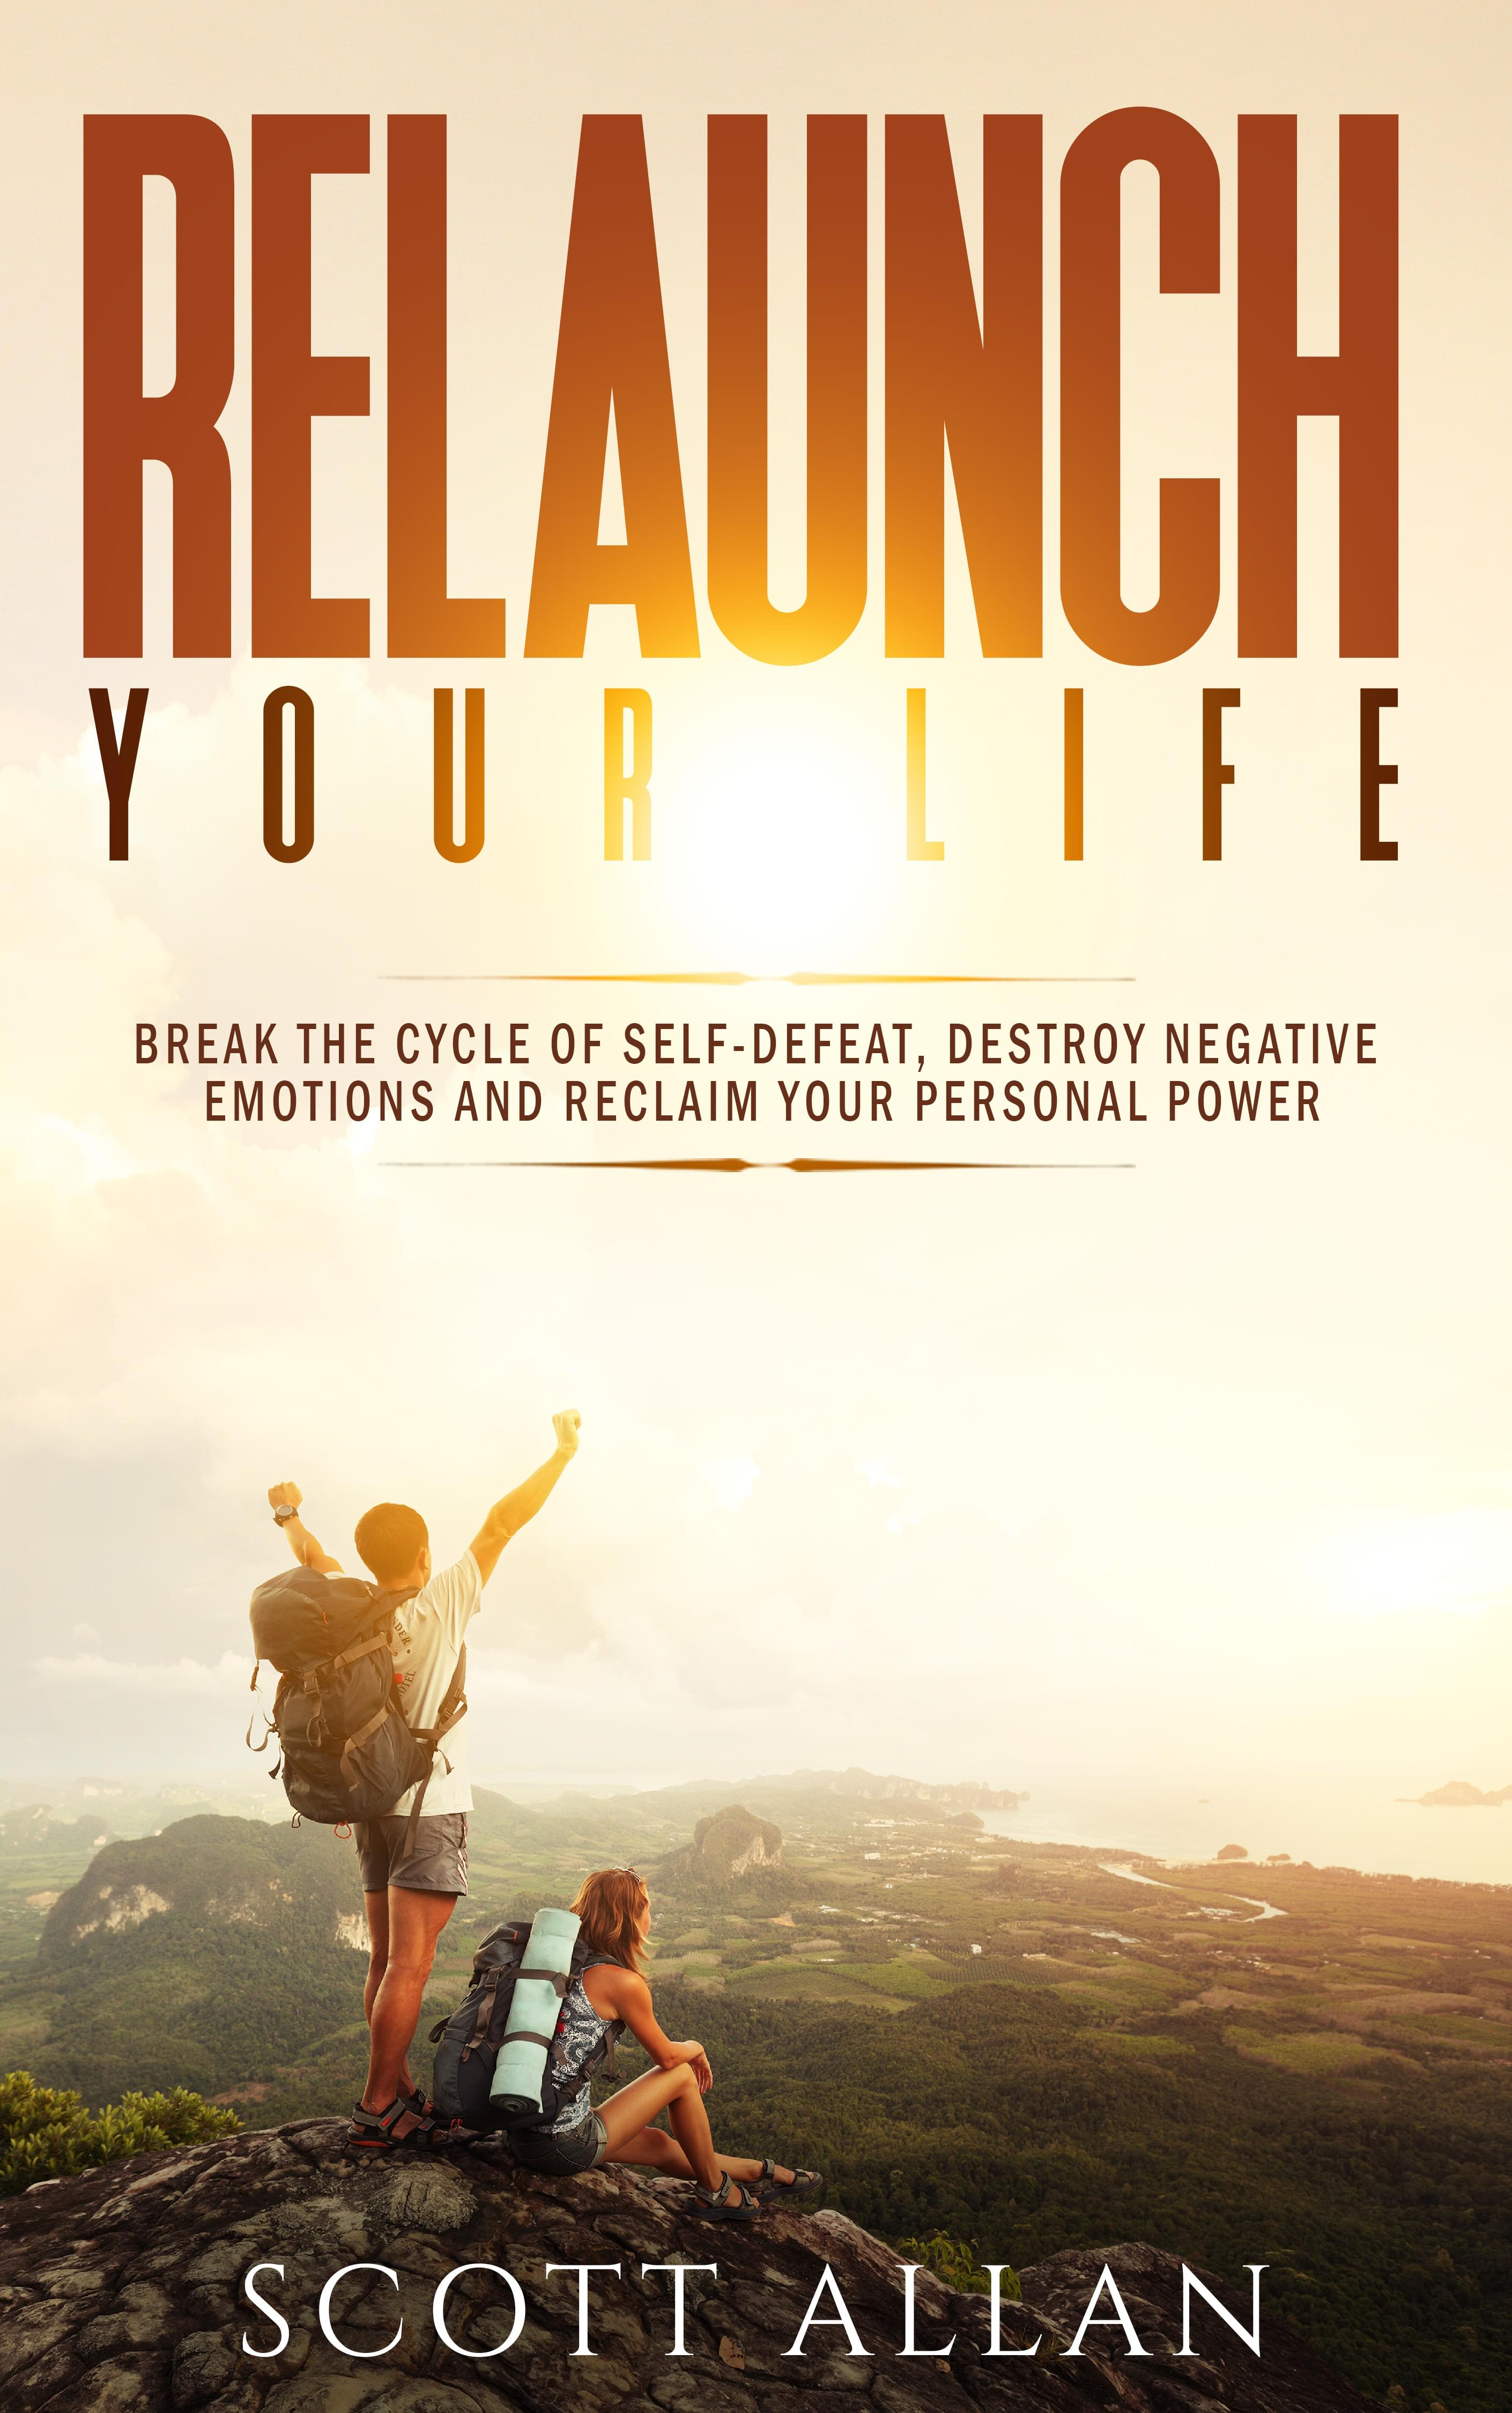 Relaunch Your Life by Scott Allan